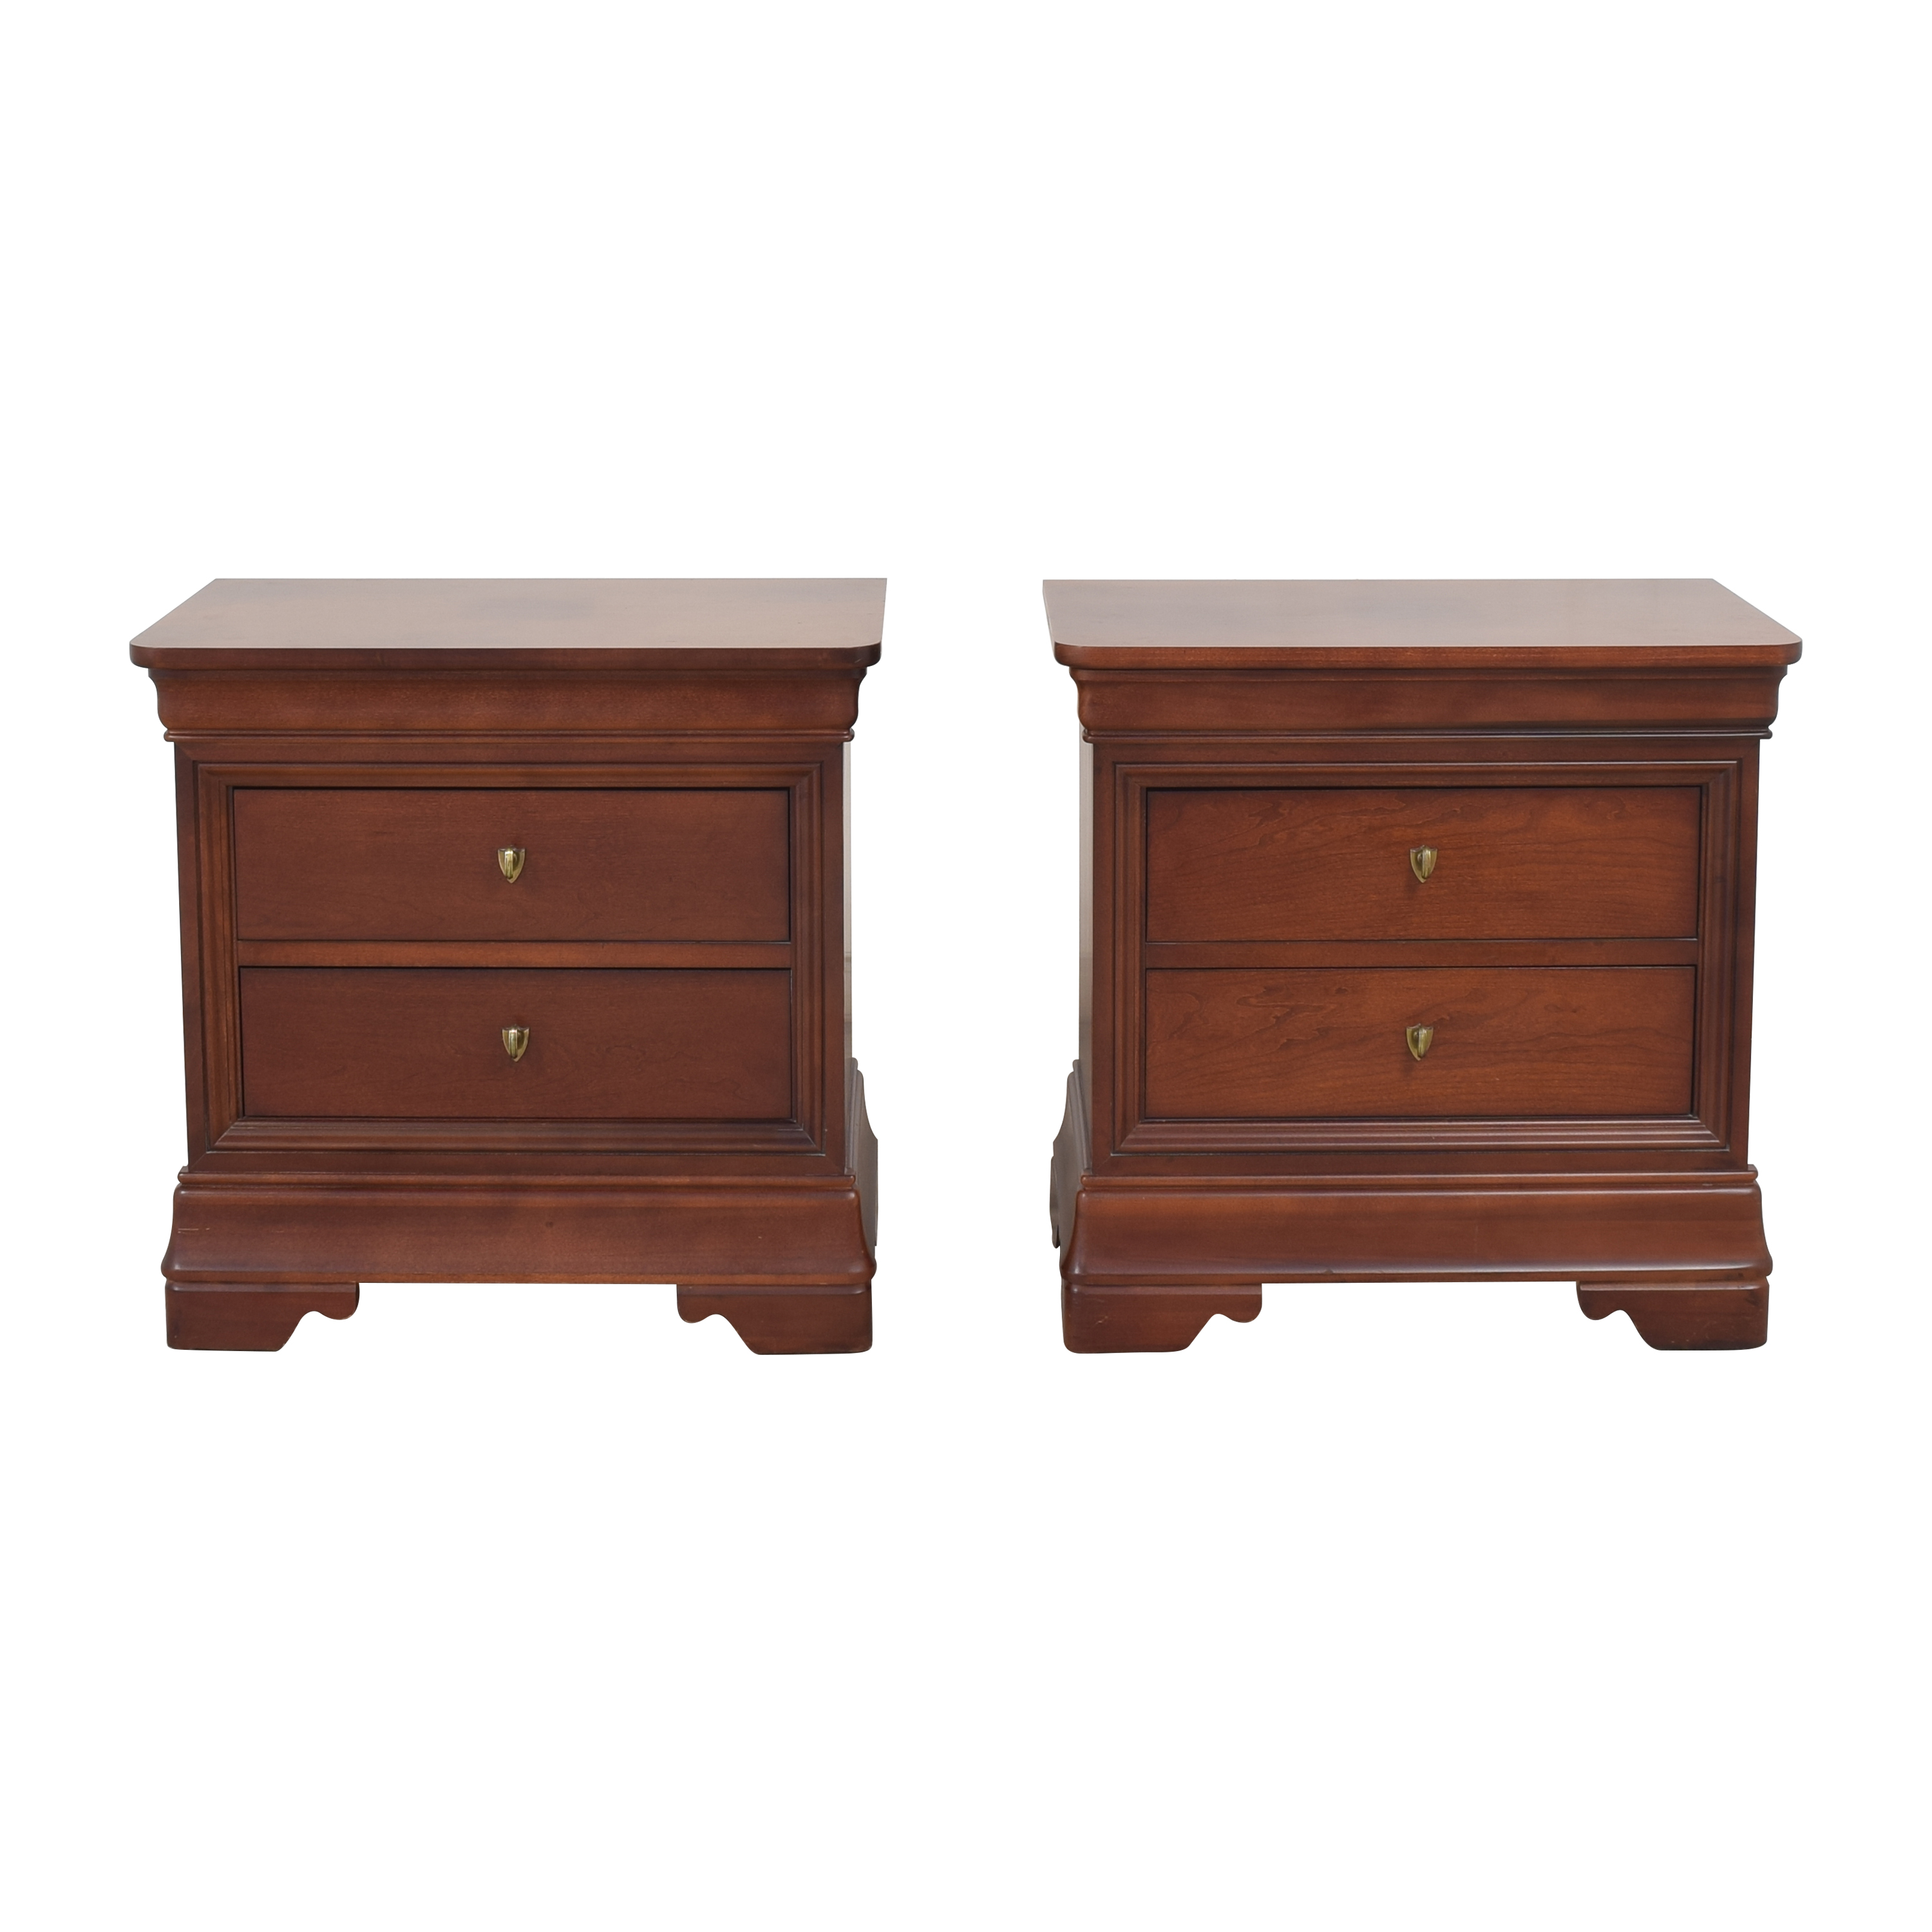 Thomasville Impressions Martinique Nightstands / Tables